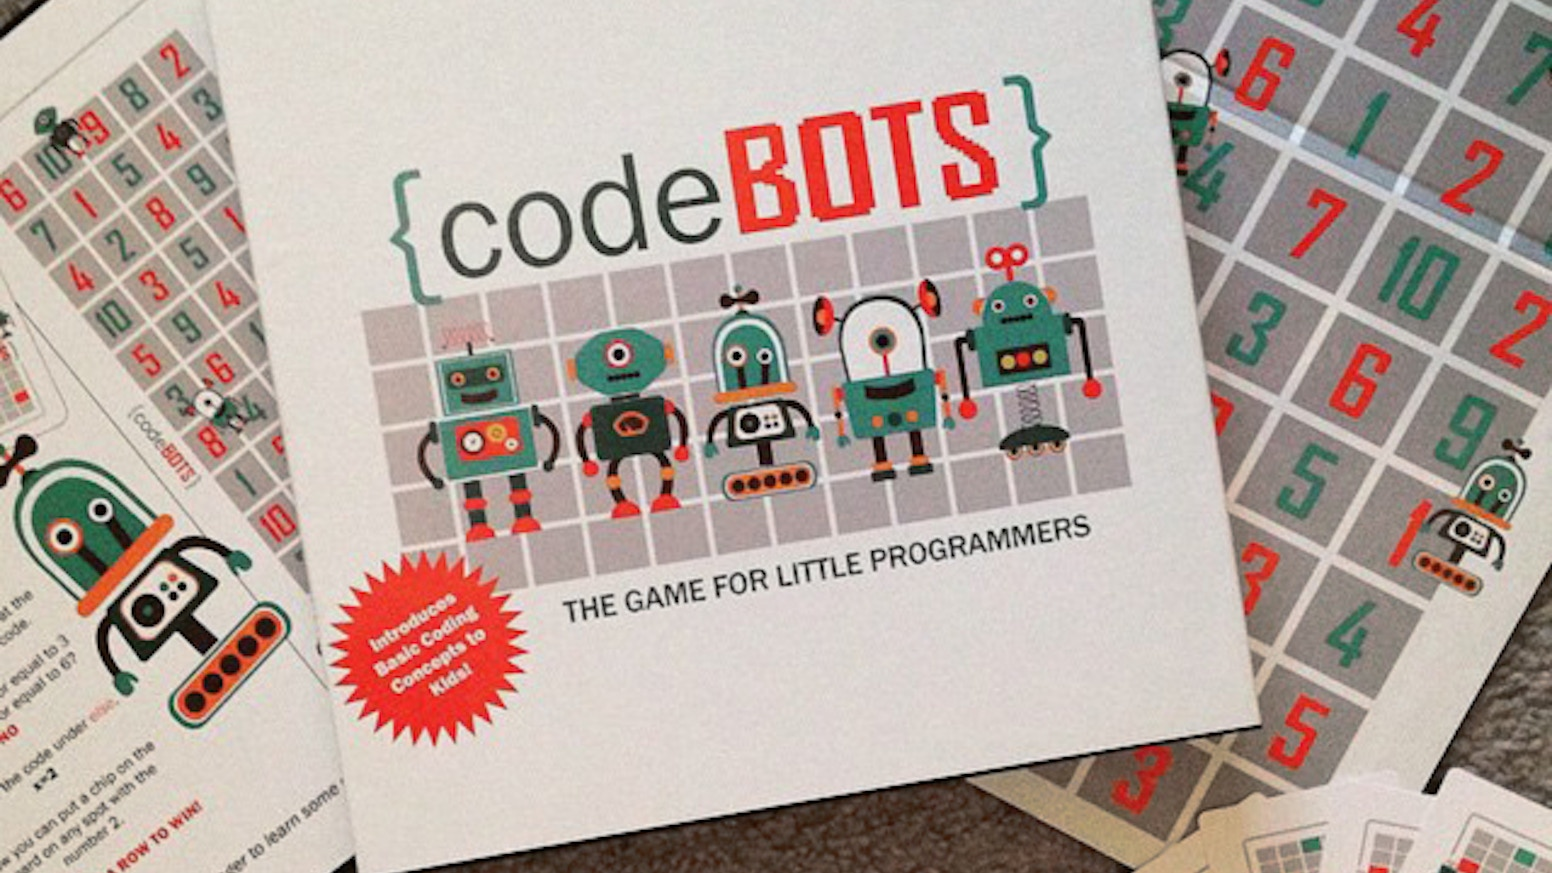 A game to introduce basic coding concepts to kids. These robots are eager to learn some code, why don't you learn along with them?